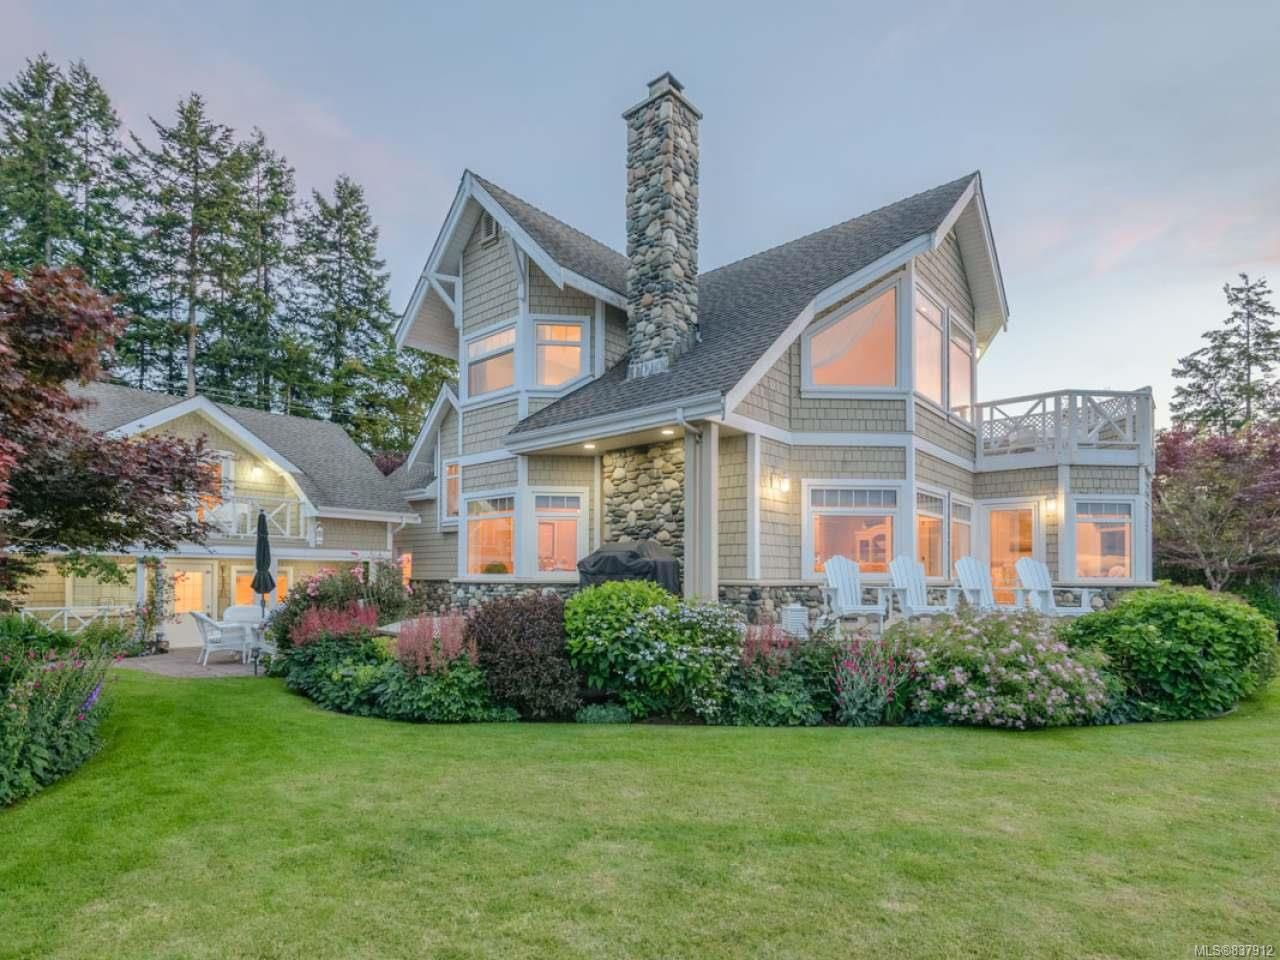 Main Photo: 5525 W Island Hwy in QUALICUM BEACH: PQ Qualicum North House for sale (Parksville/Qualicum)  : MLS®# 837912